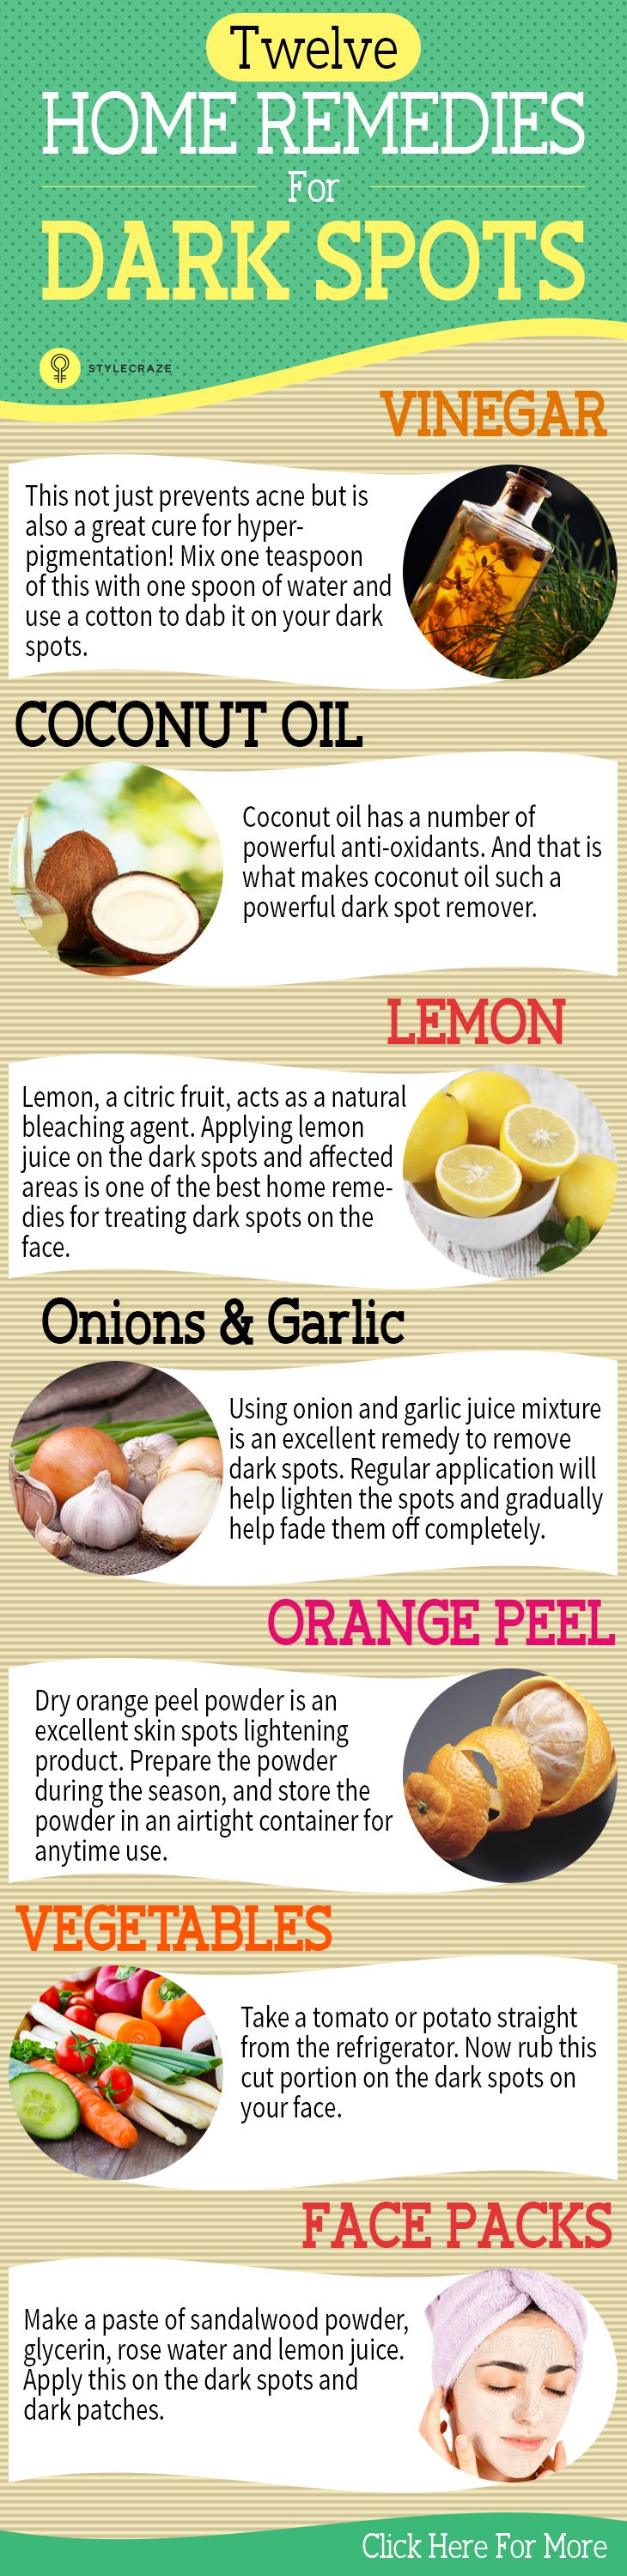 6 Home Remedies To Remove Dark Spots On The Face | Skin Care